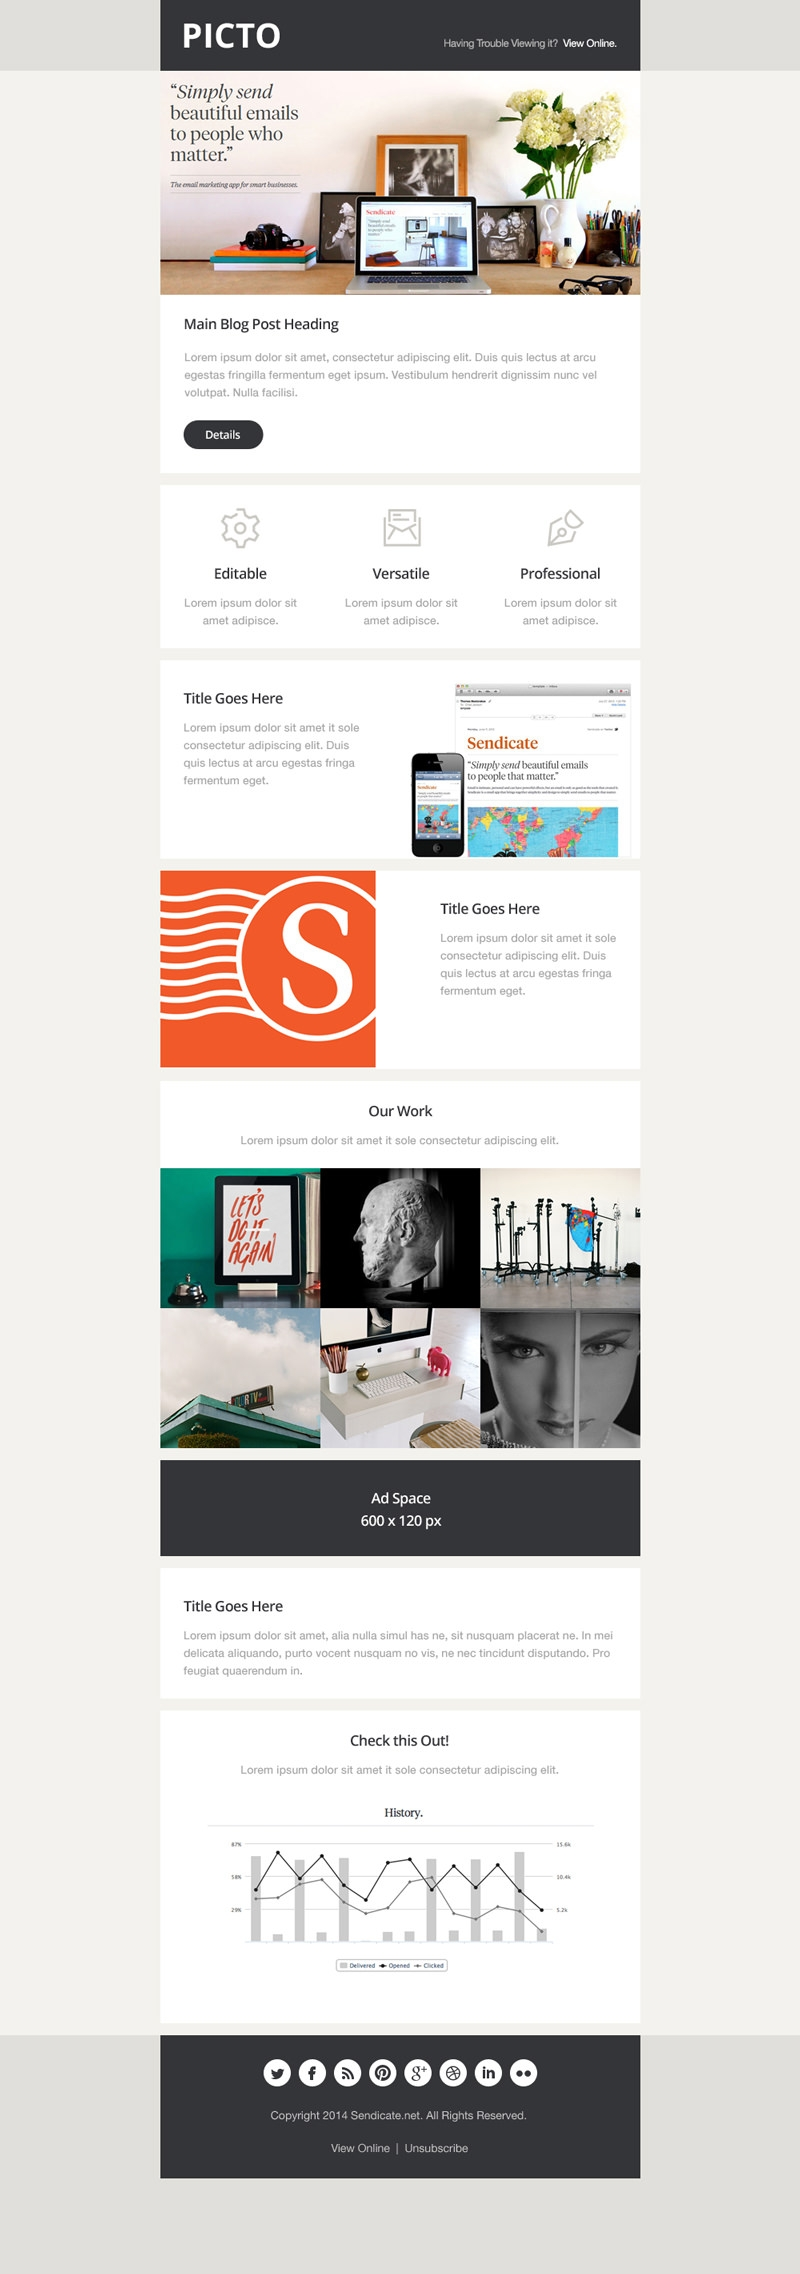 picto-email-psd-theme-